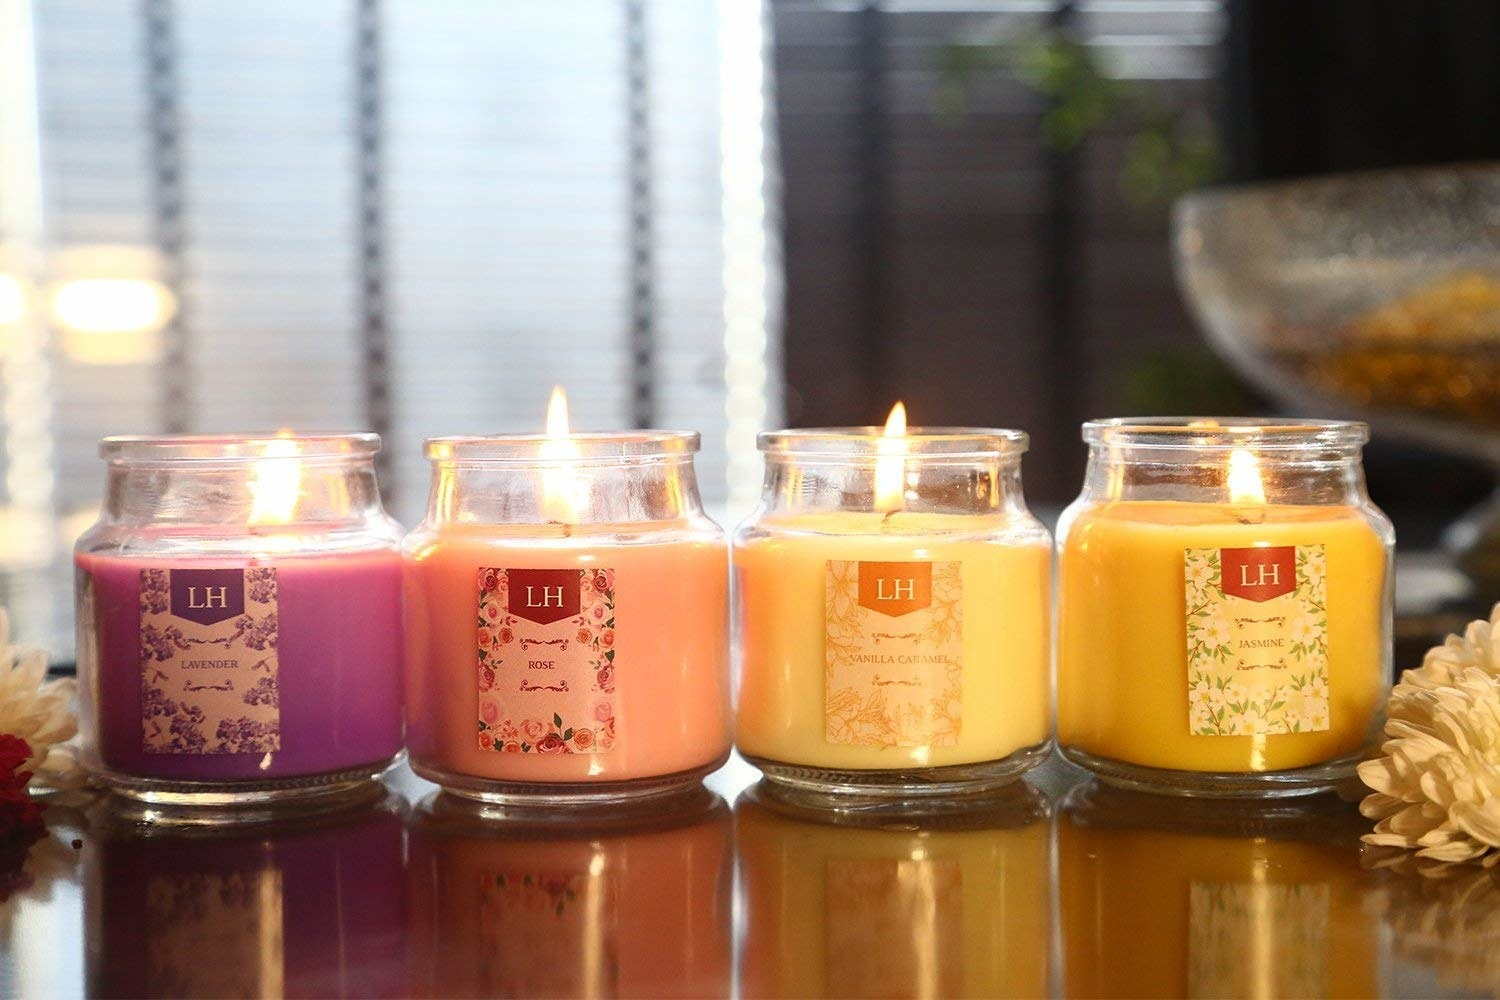 Four jars of lit aromatherapy candles of different scents on a table